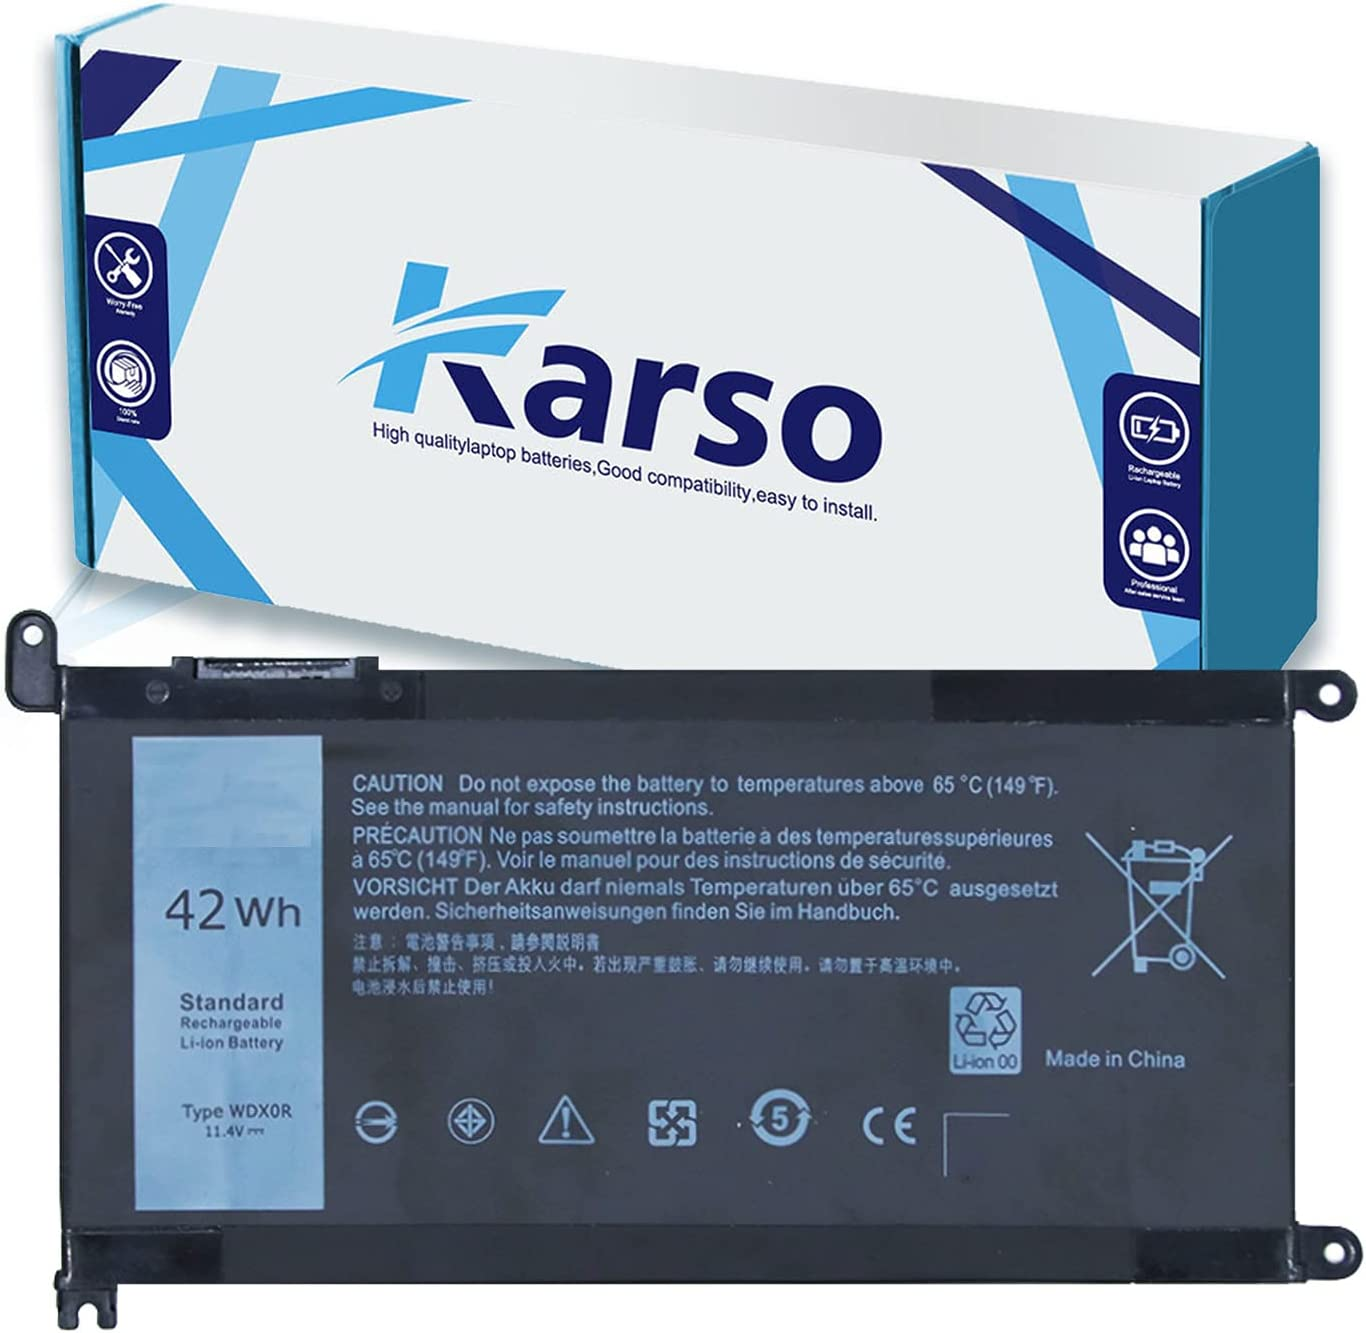 Karso WDX0R Laptop Battery Compatible with Dell Inspiron 13 5000 5368 5378 7000 7368 7378 15 5000 5565 5567 5568 5578 7000 7560 7569 7570 7579 P58F 17 5765 5767 5768 5770 WDXOR Battery